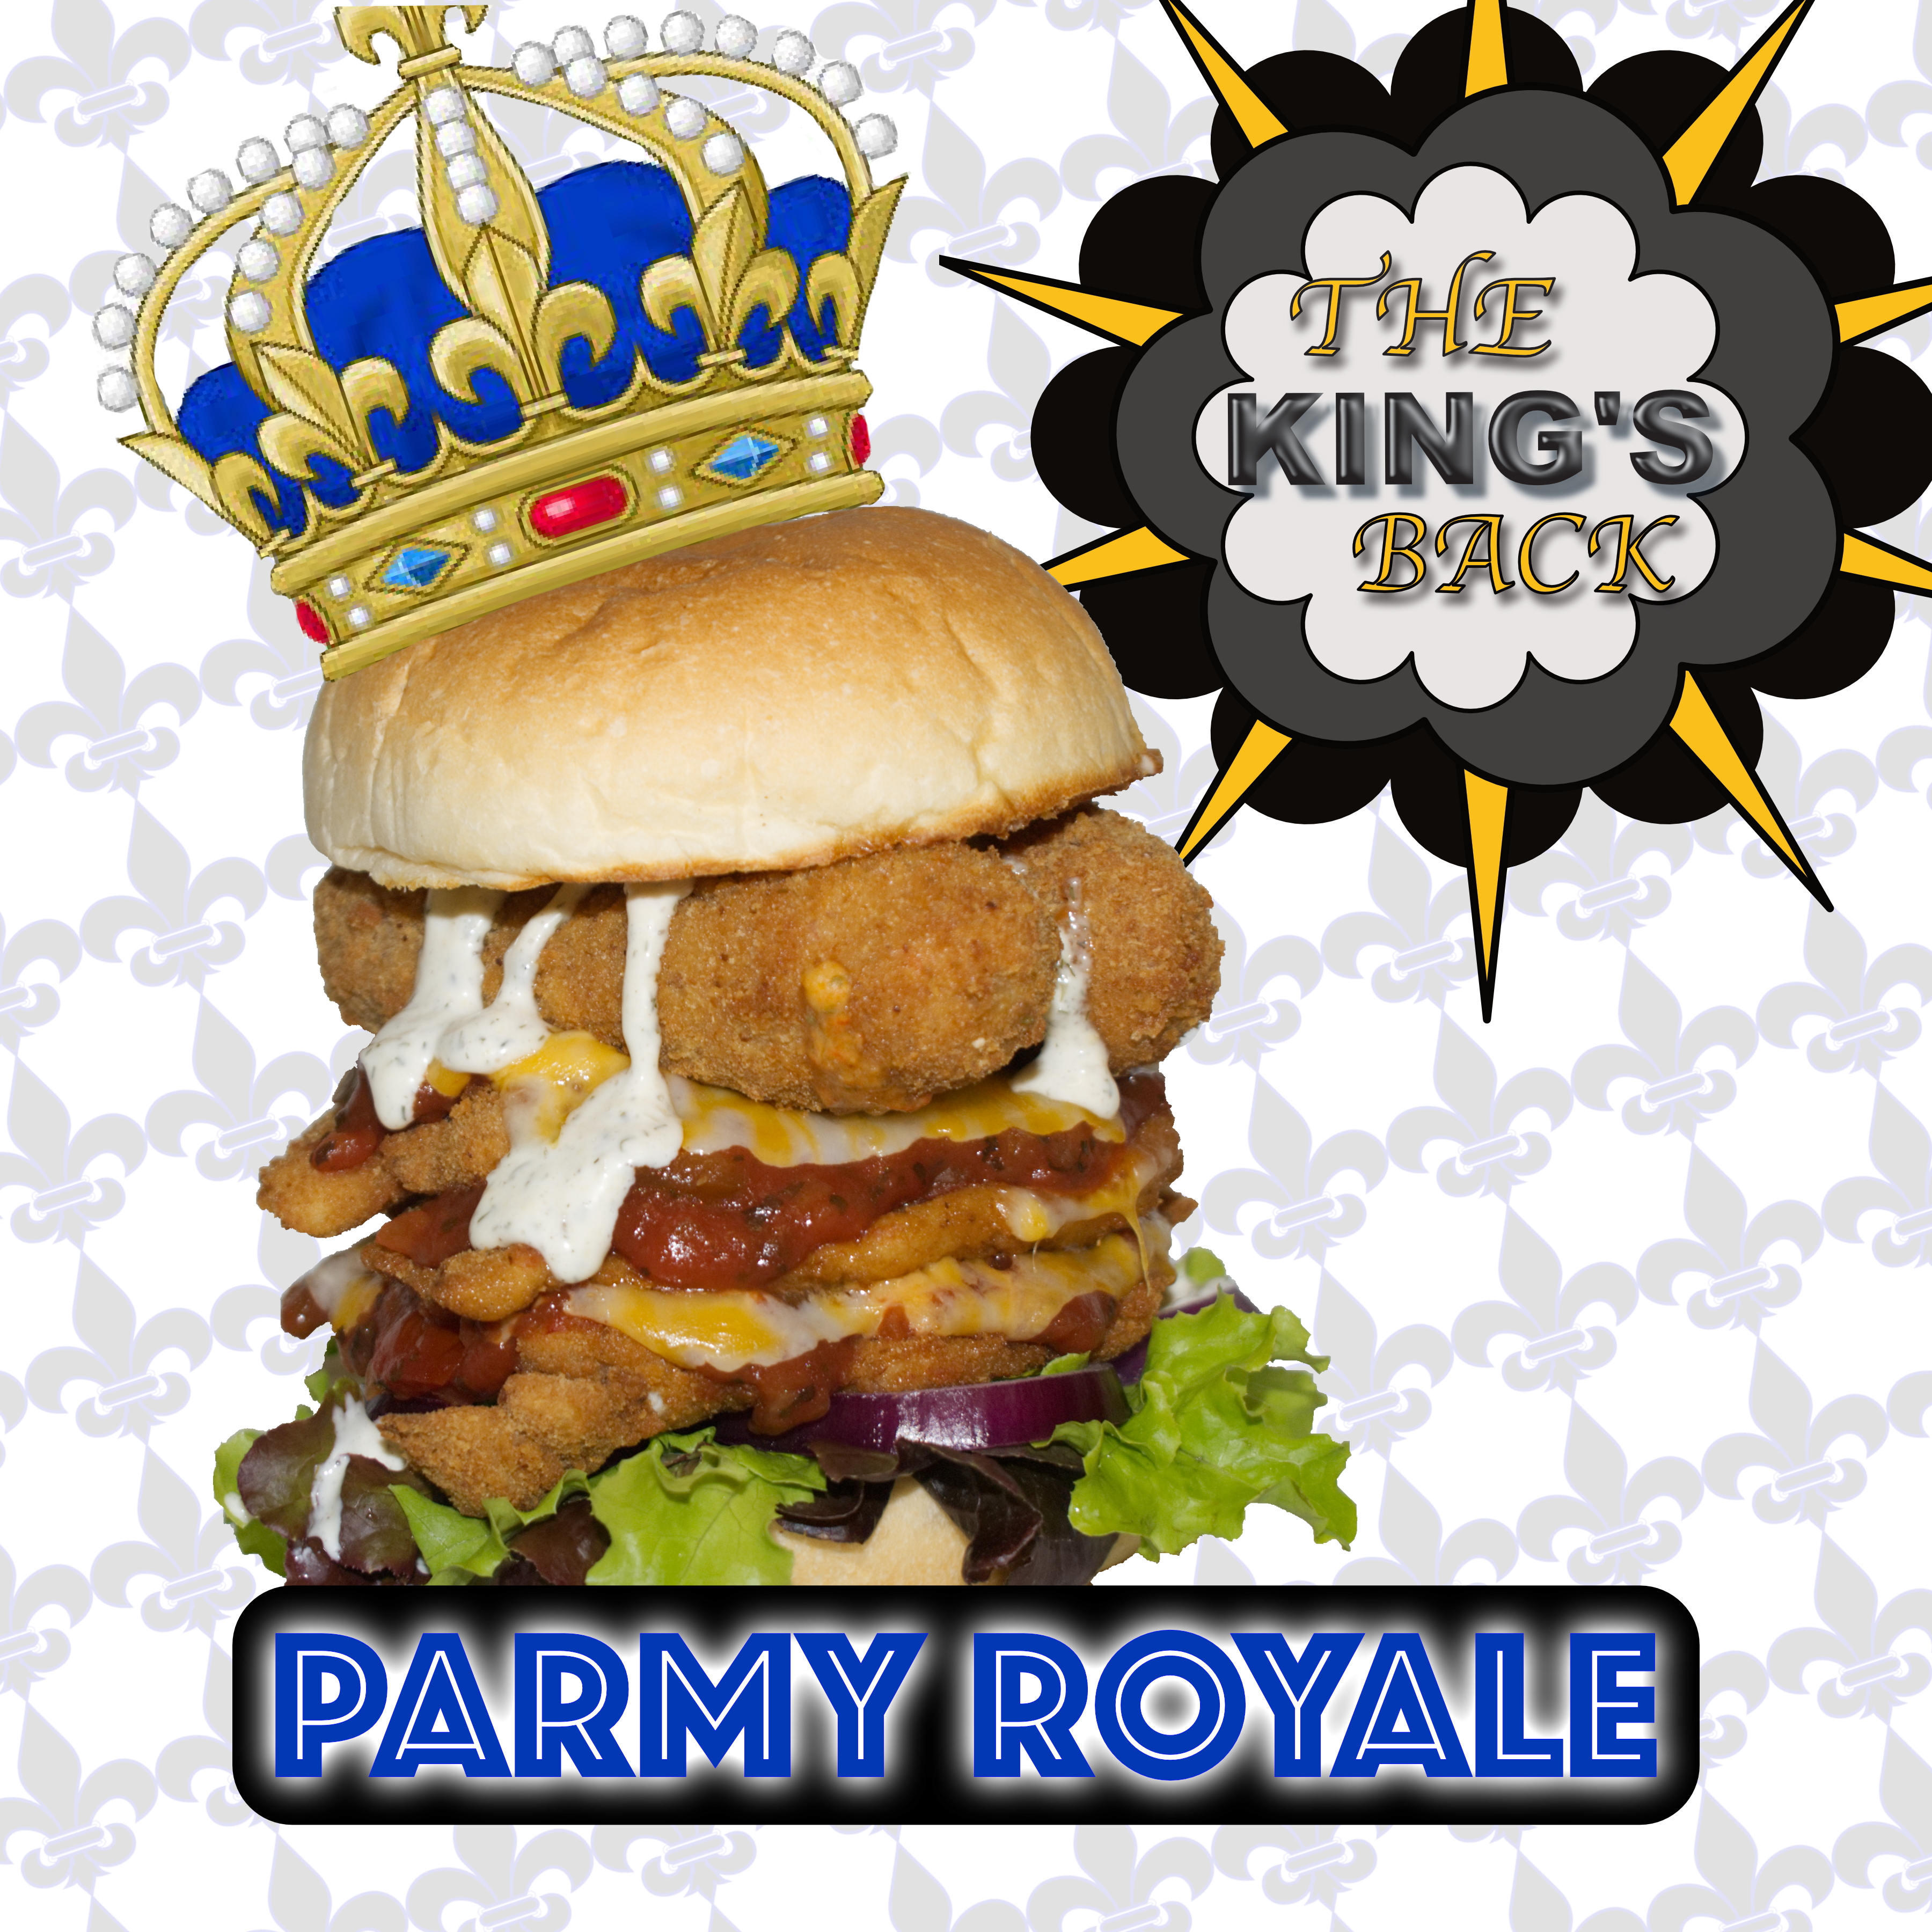 Parmy Royale